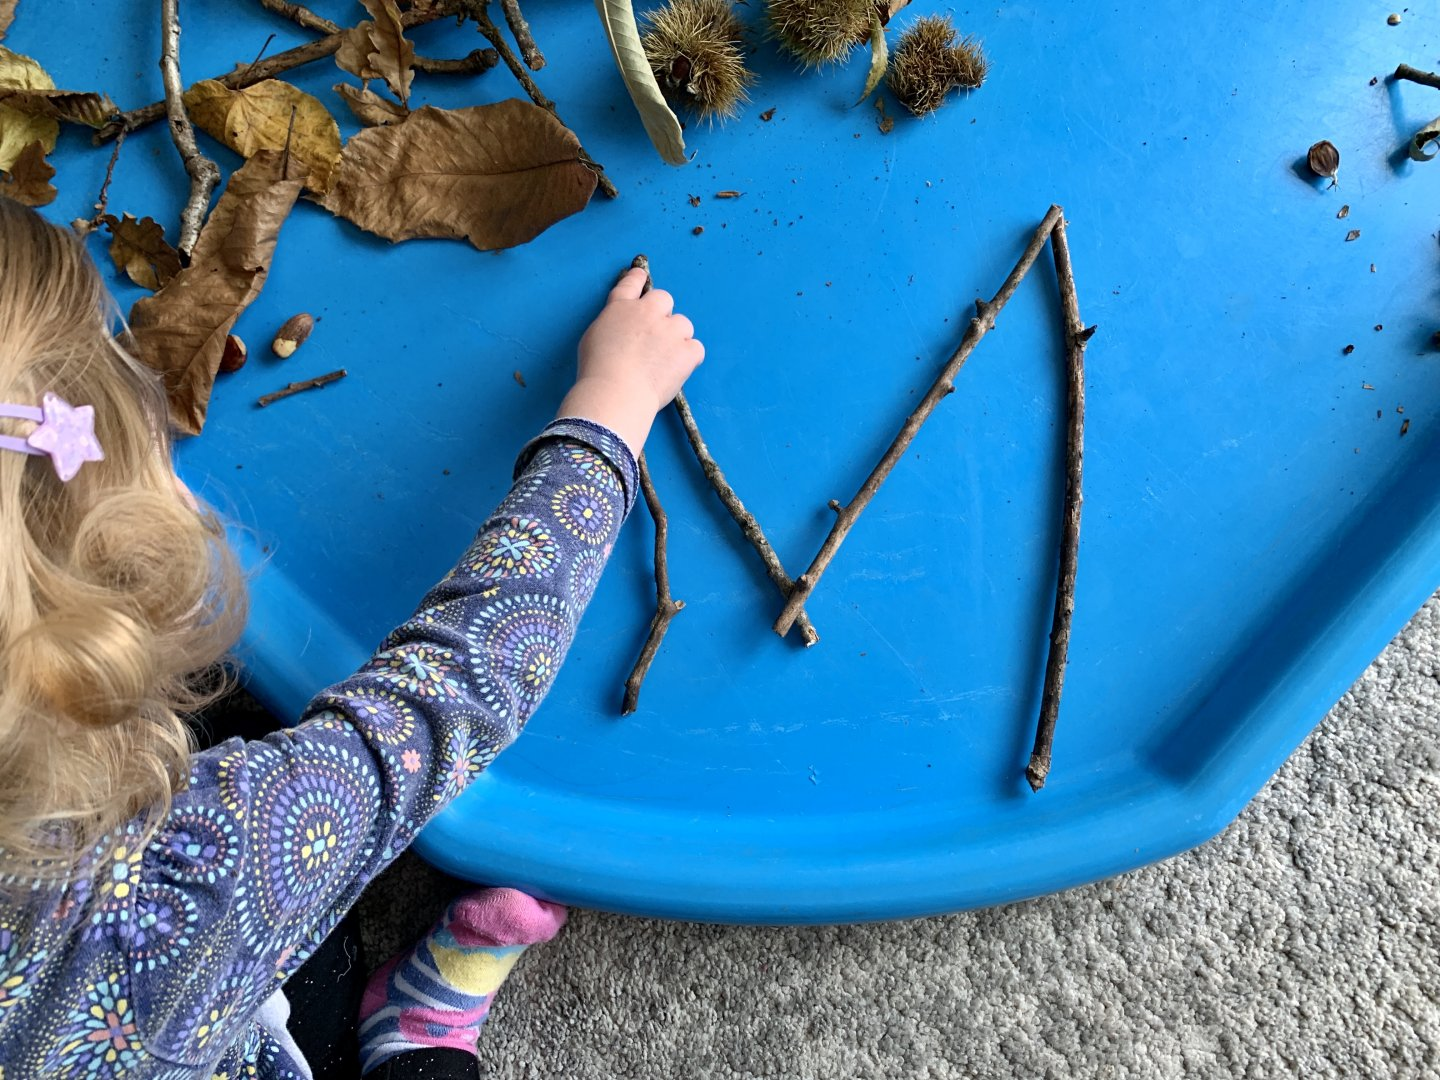 M uses her finger to trace the shape of the letter M, made out of twigs.